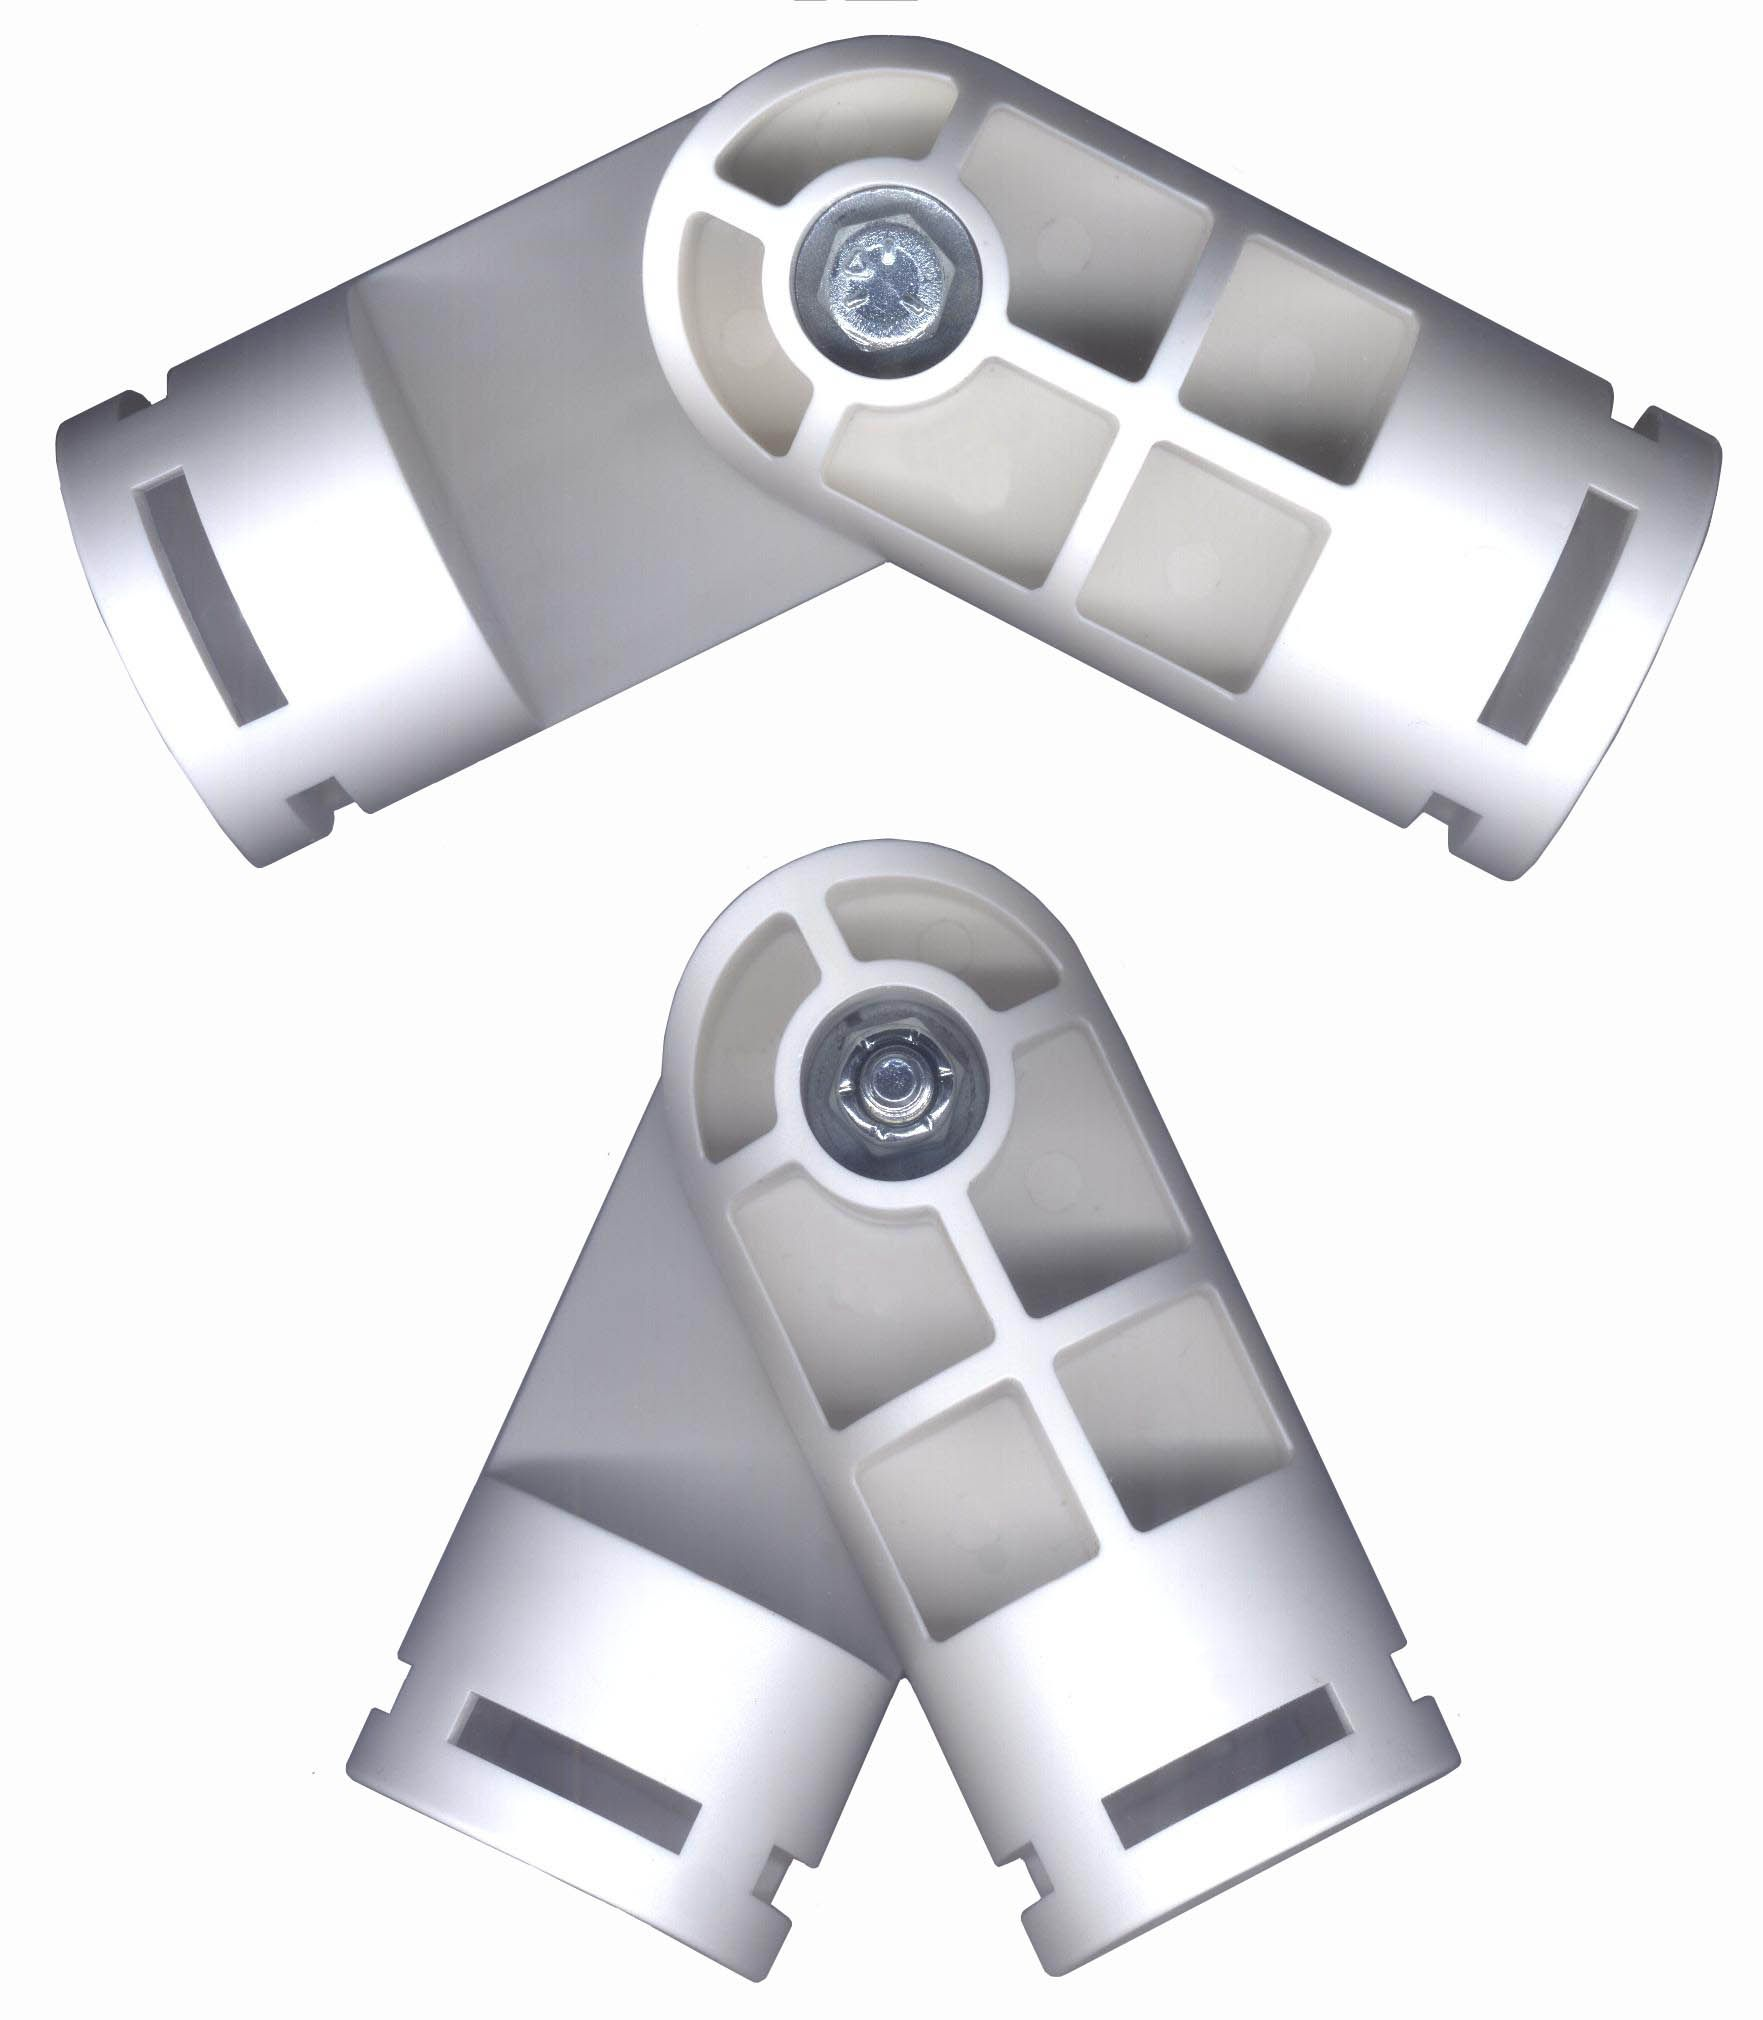 White pvc fittings creative shelters adjustable joint